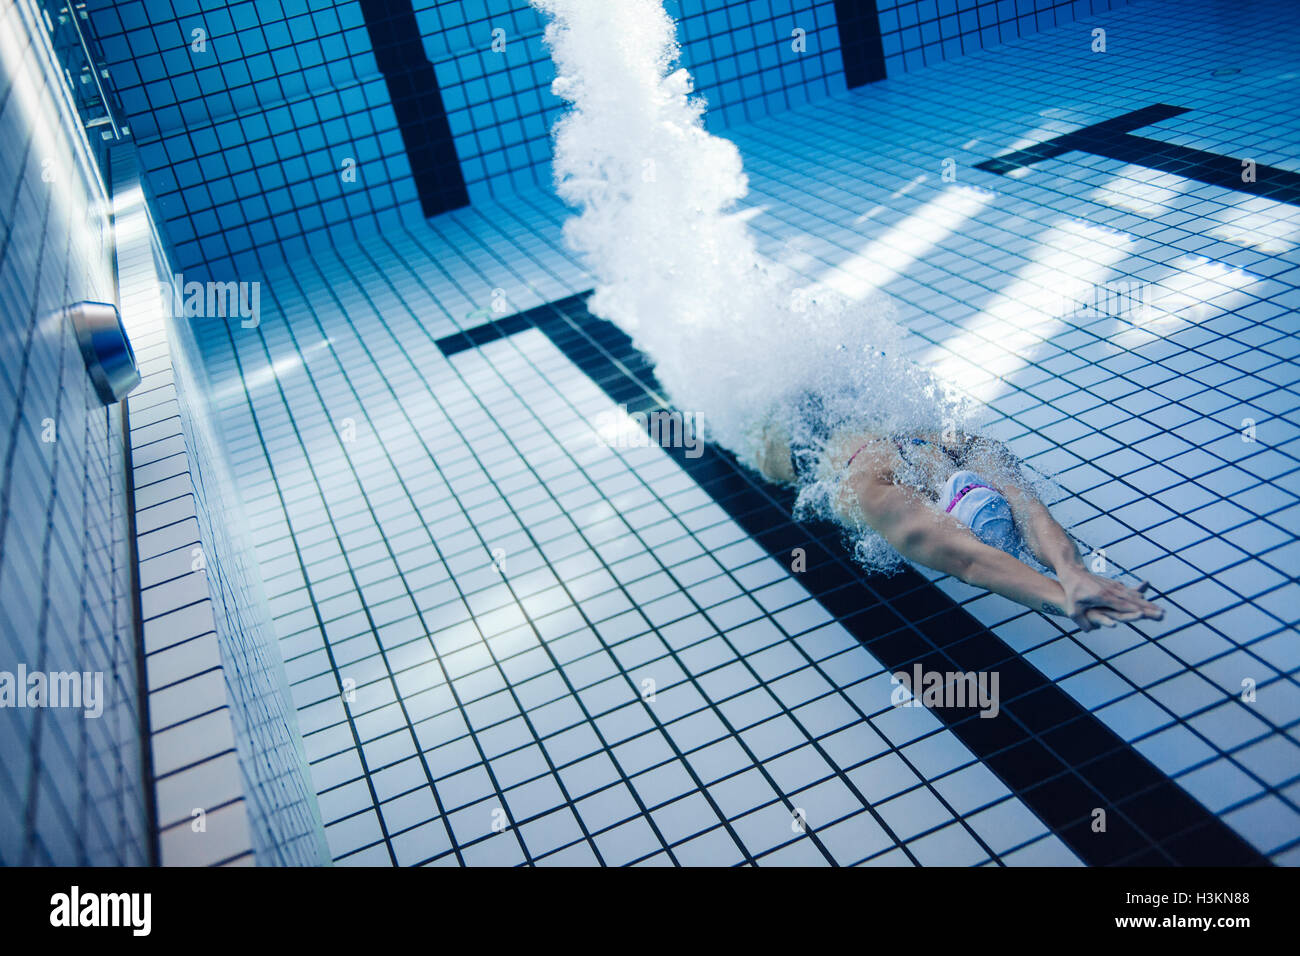 Underwater shot of female swimmer swimming inside pool. Fit young female swimmer training in the pool. - Stock Image